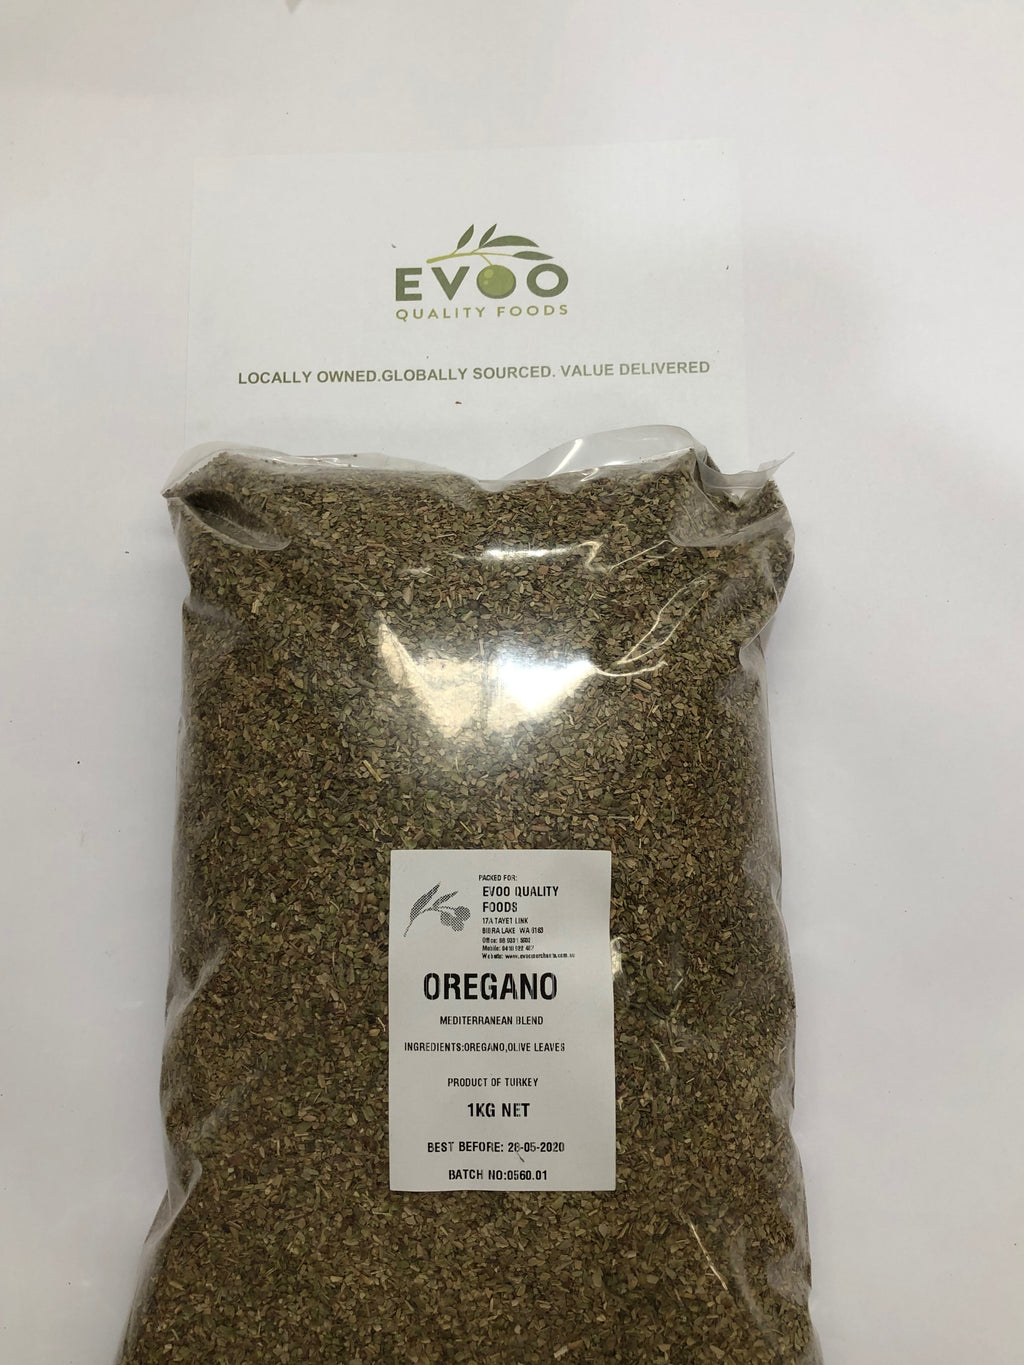 Oregano Rubbed Dried 1kg Bag EVOO QF